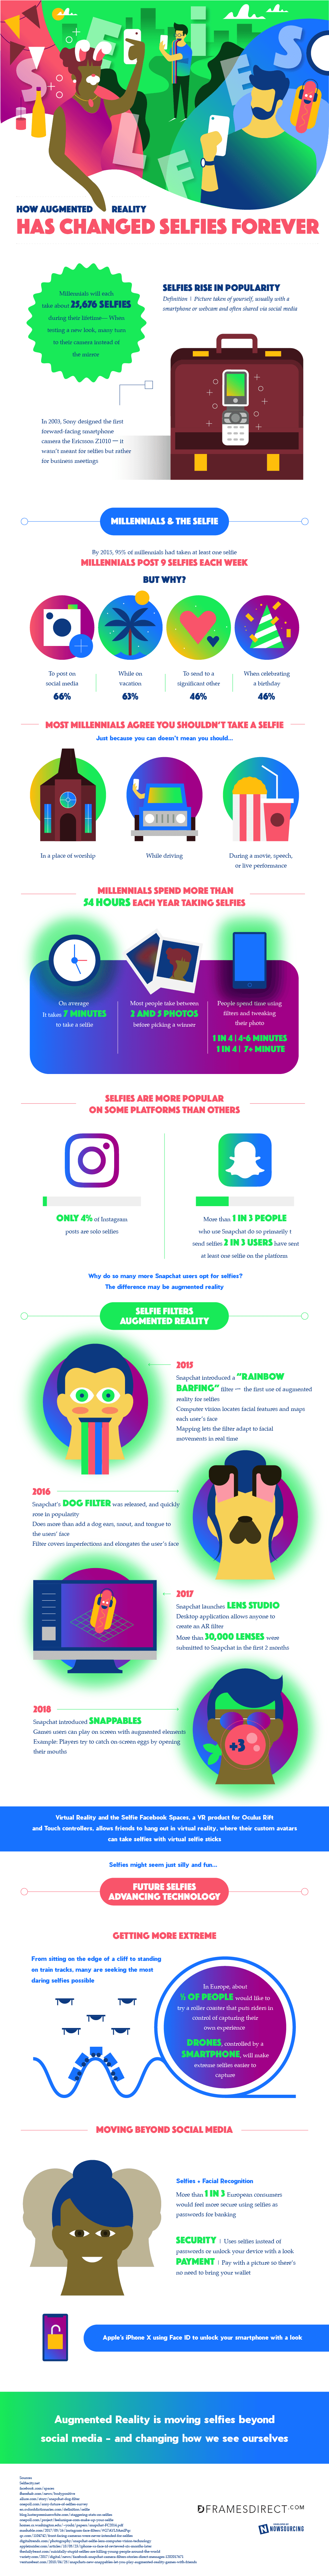 Augmented Reality Filters